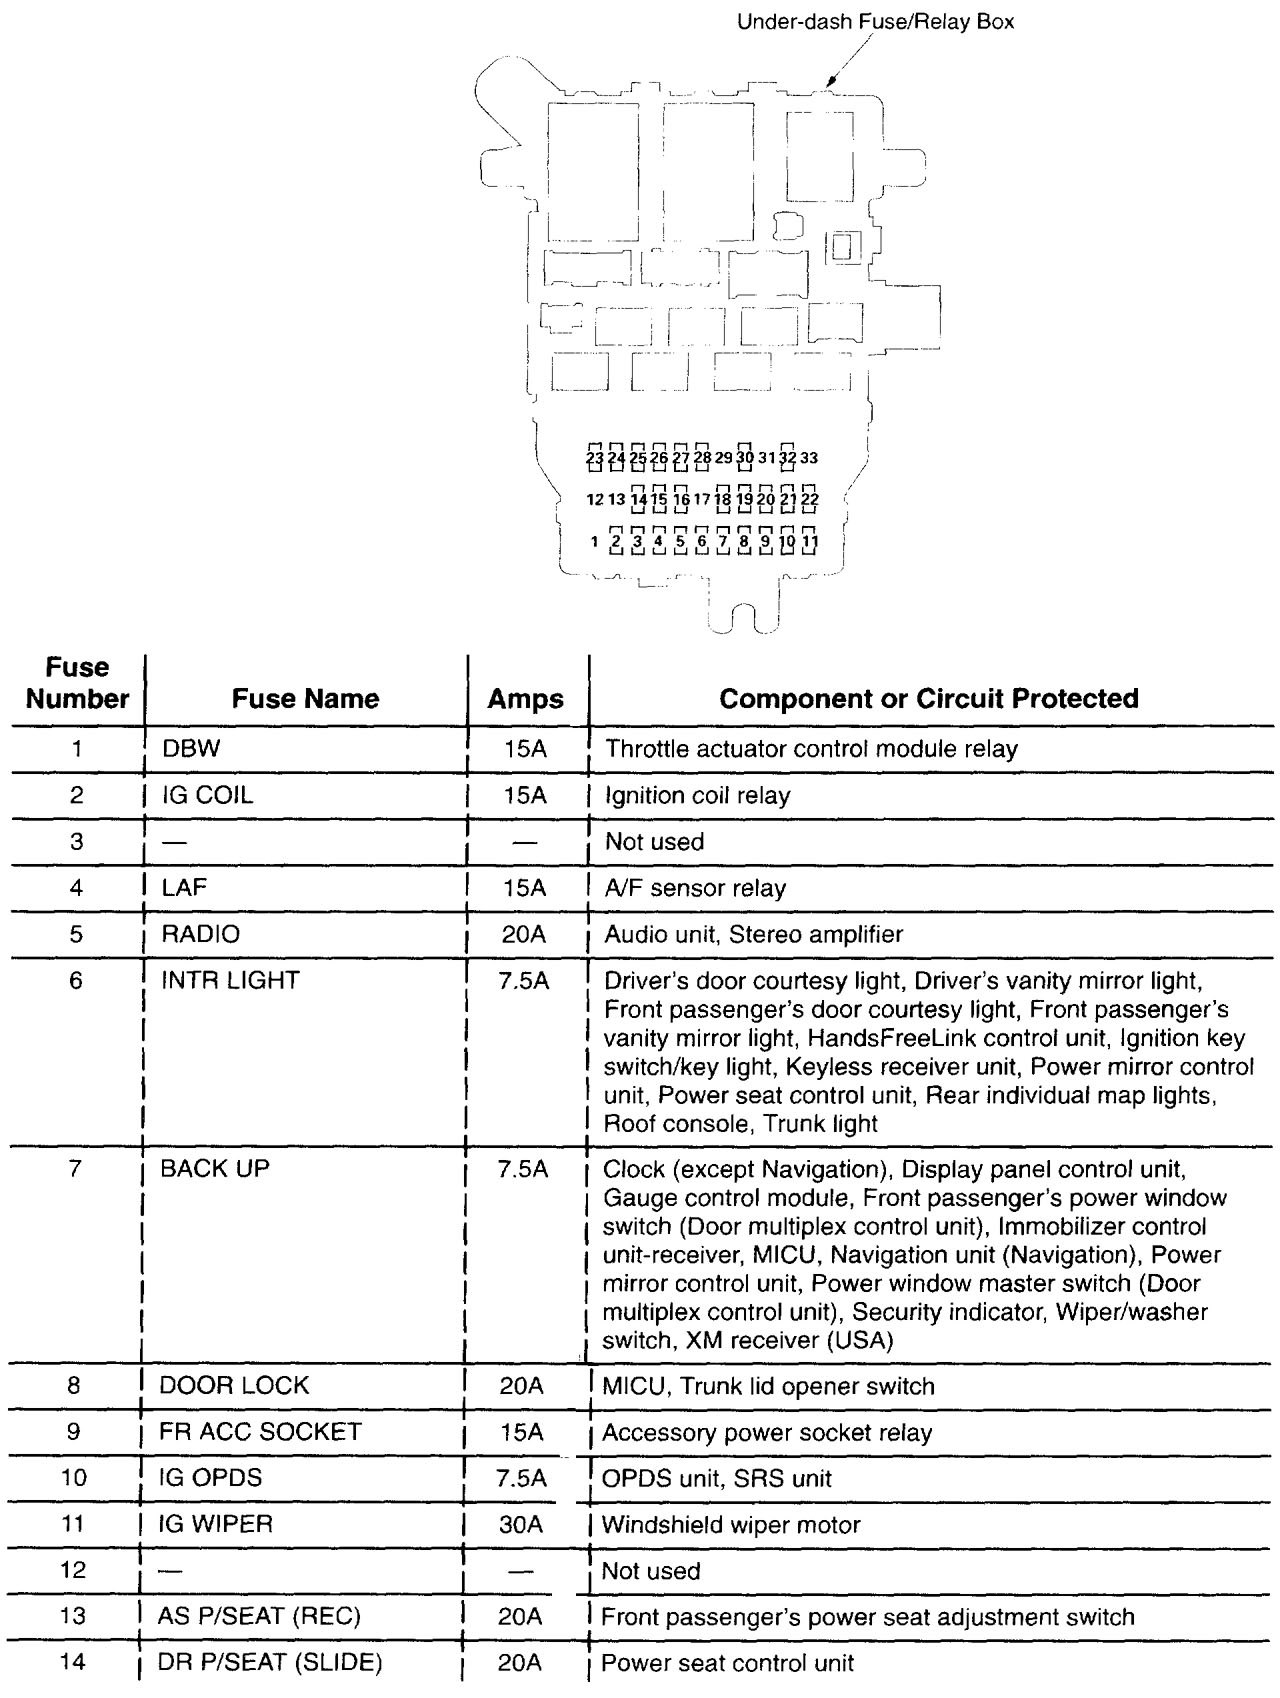 Acura TL (2003 - 2004) - wiring diagrams - relay - Carknowledge.info | 1998 Acura 3 2 Tl Wiring Schematic |  | Carknowledge.info